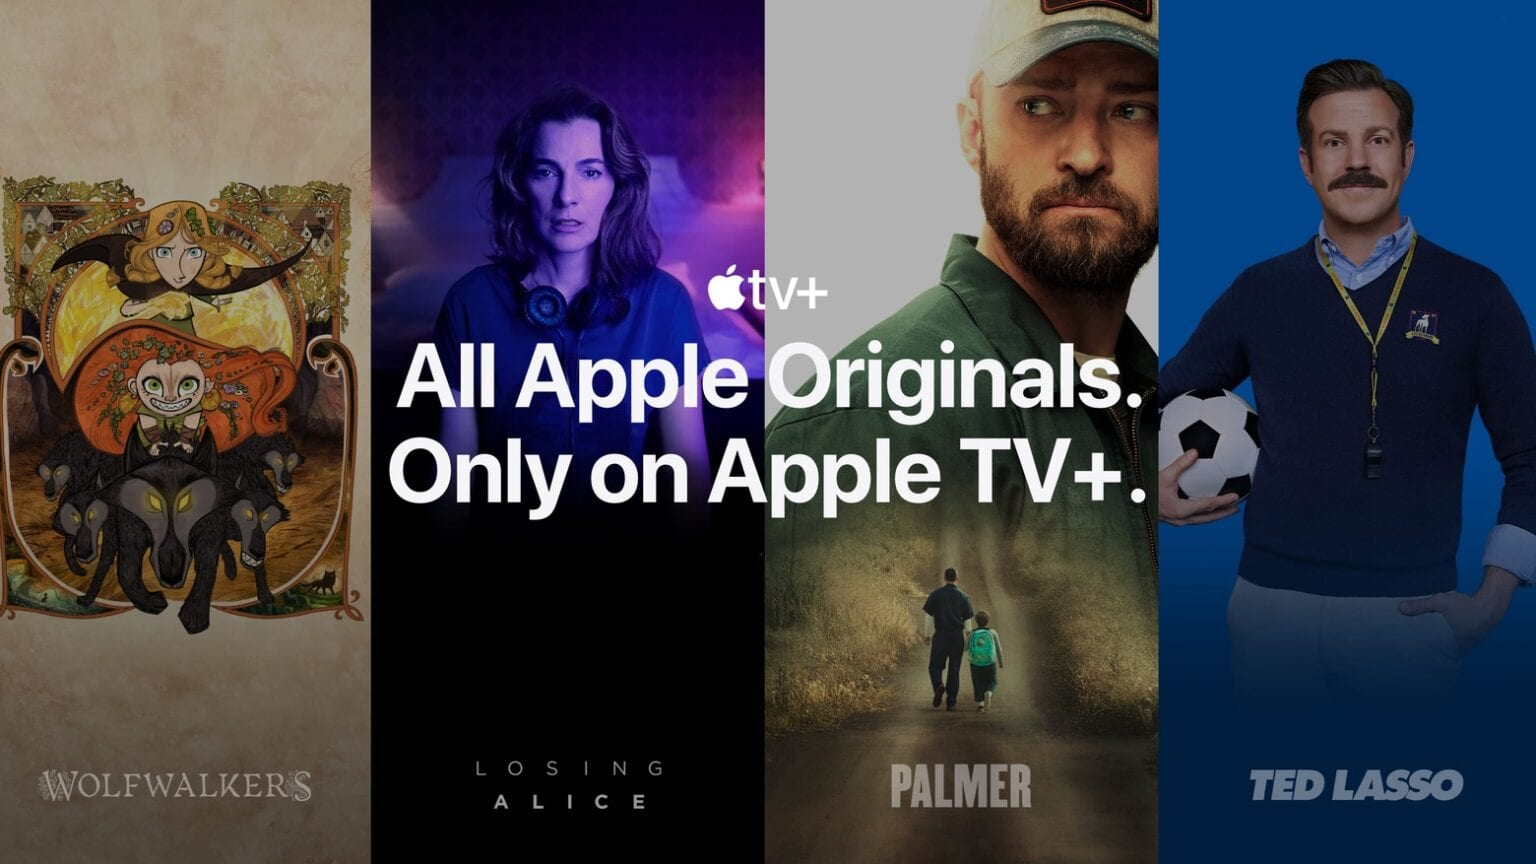 Your free Apple TV+ trial just got even sweeter.